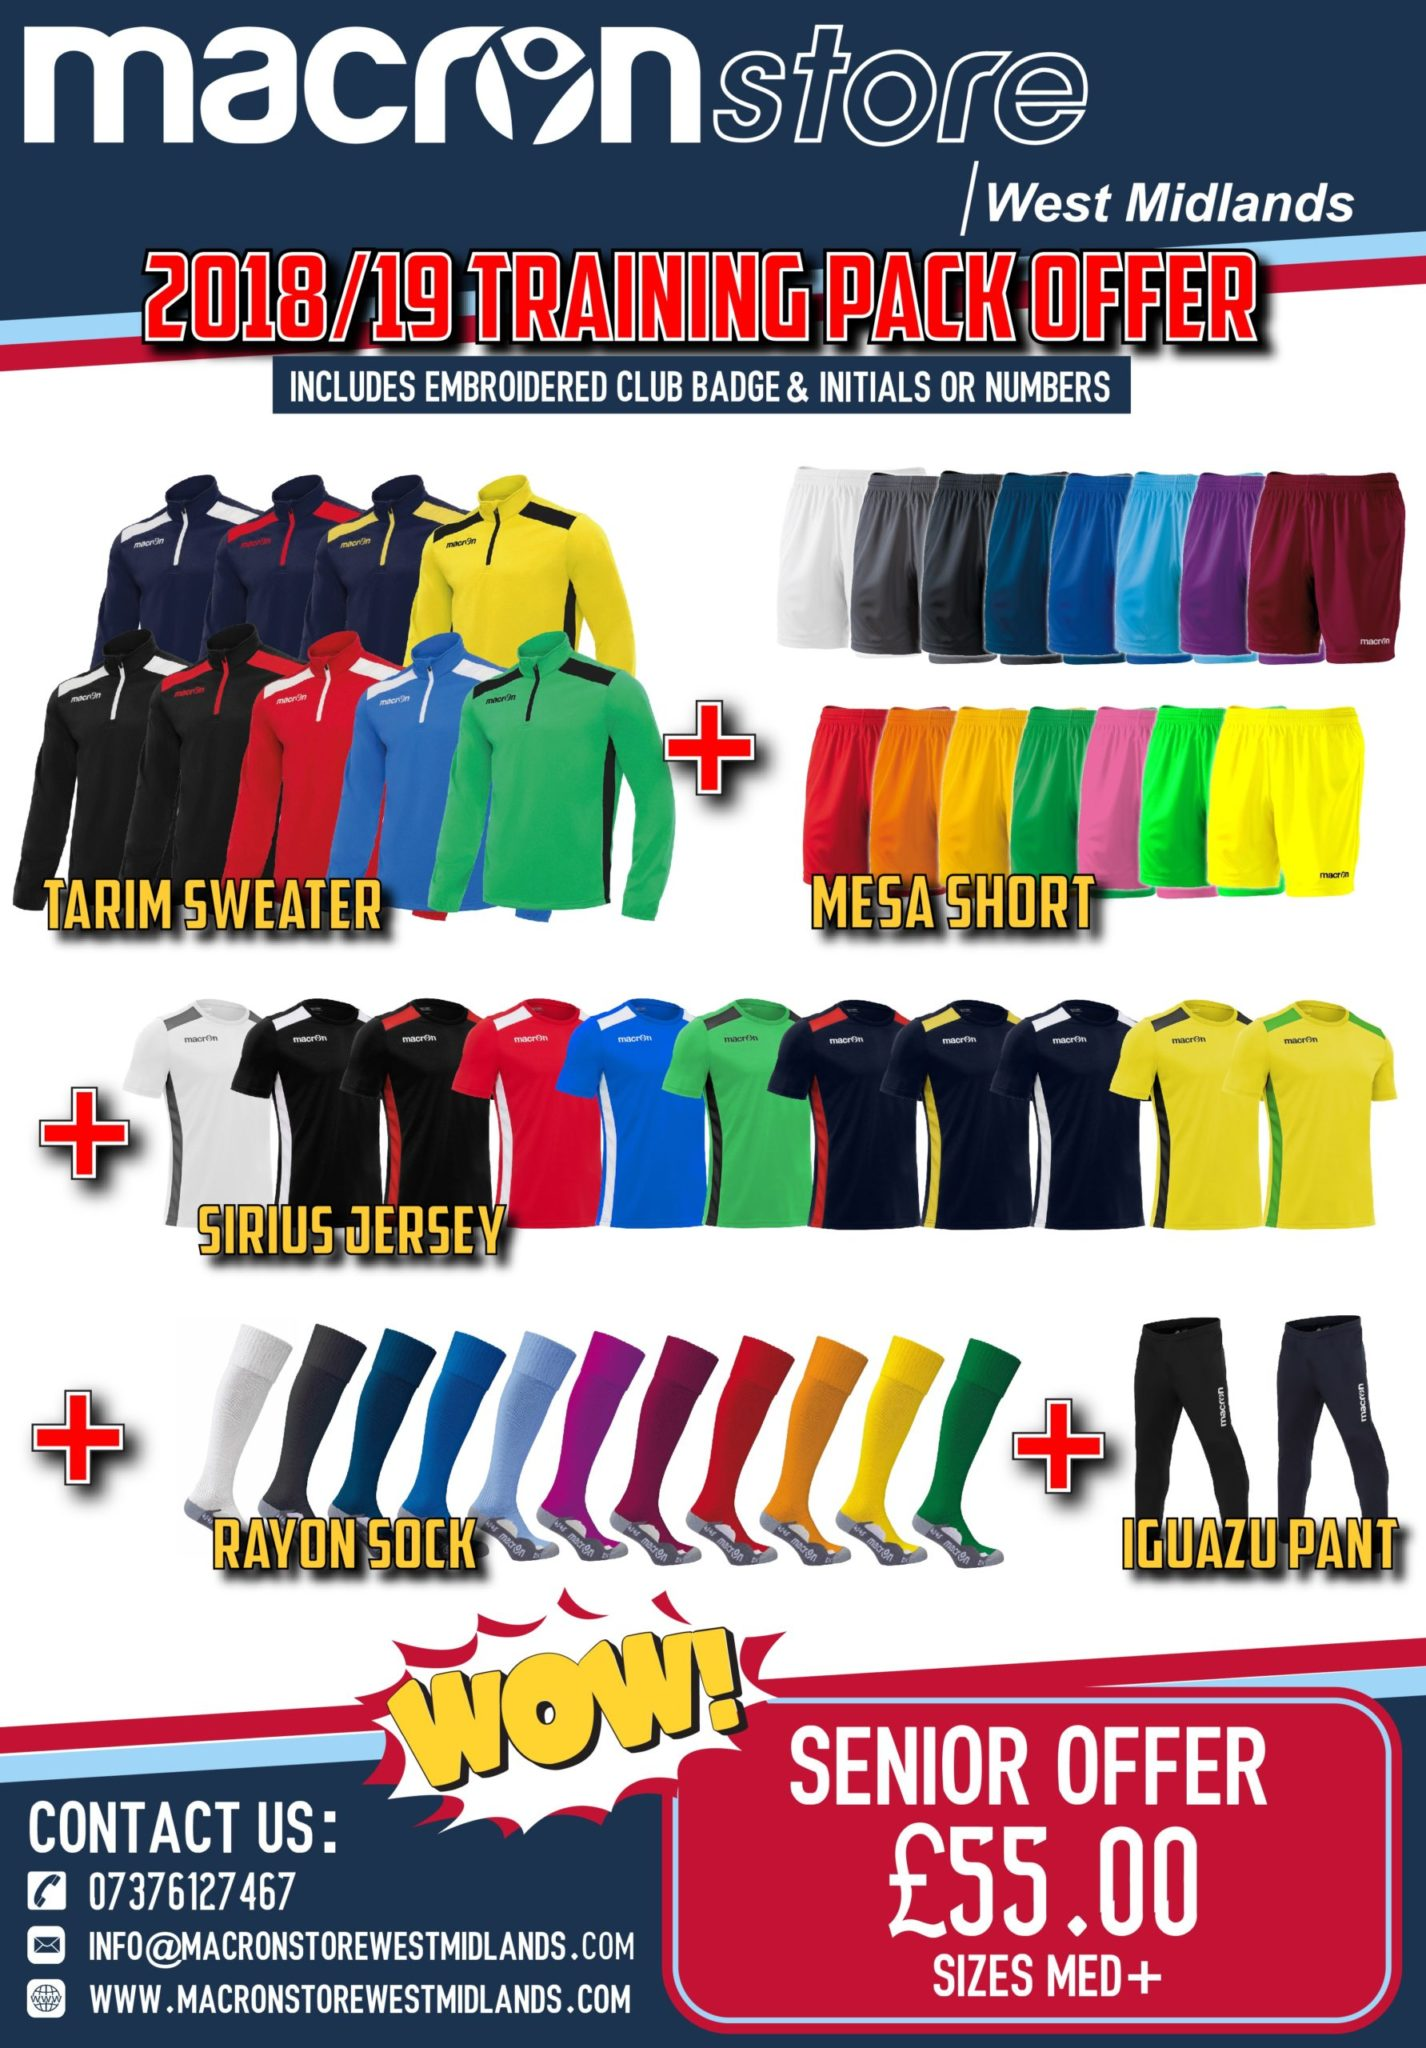 Training Pack Offer - Adults